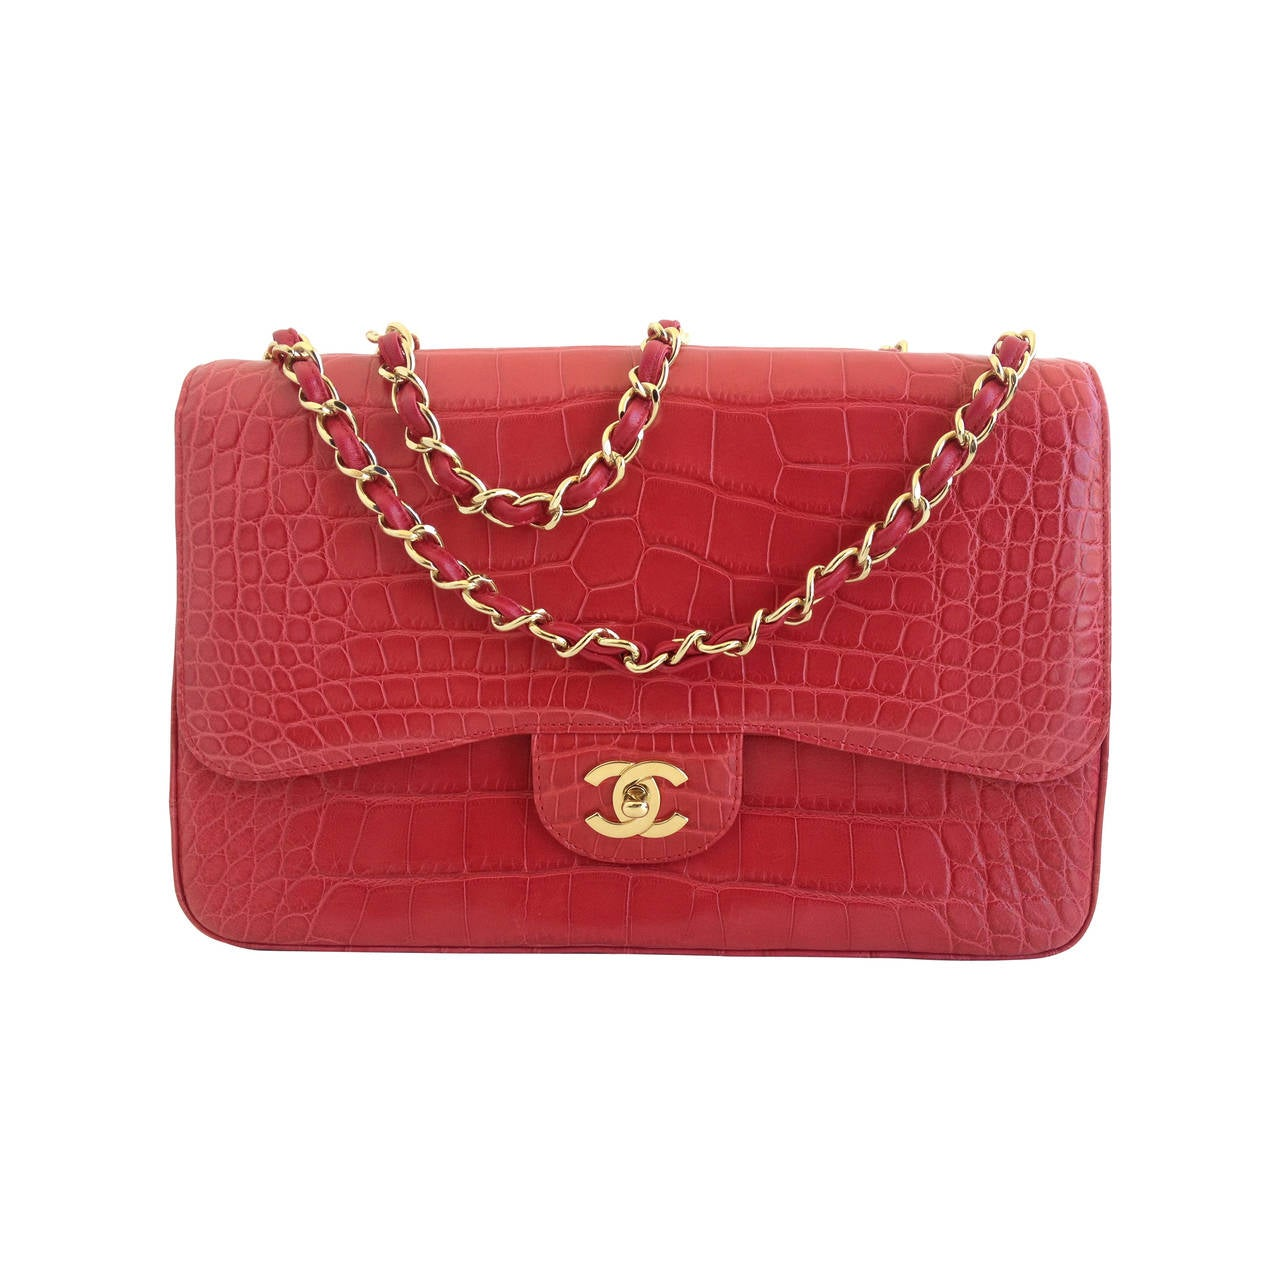 899a65fc7ba8 Chanel Red Alligator Jumbo Classic Single Flap Bag at 1stdibs